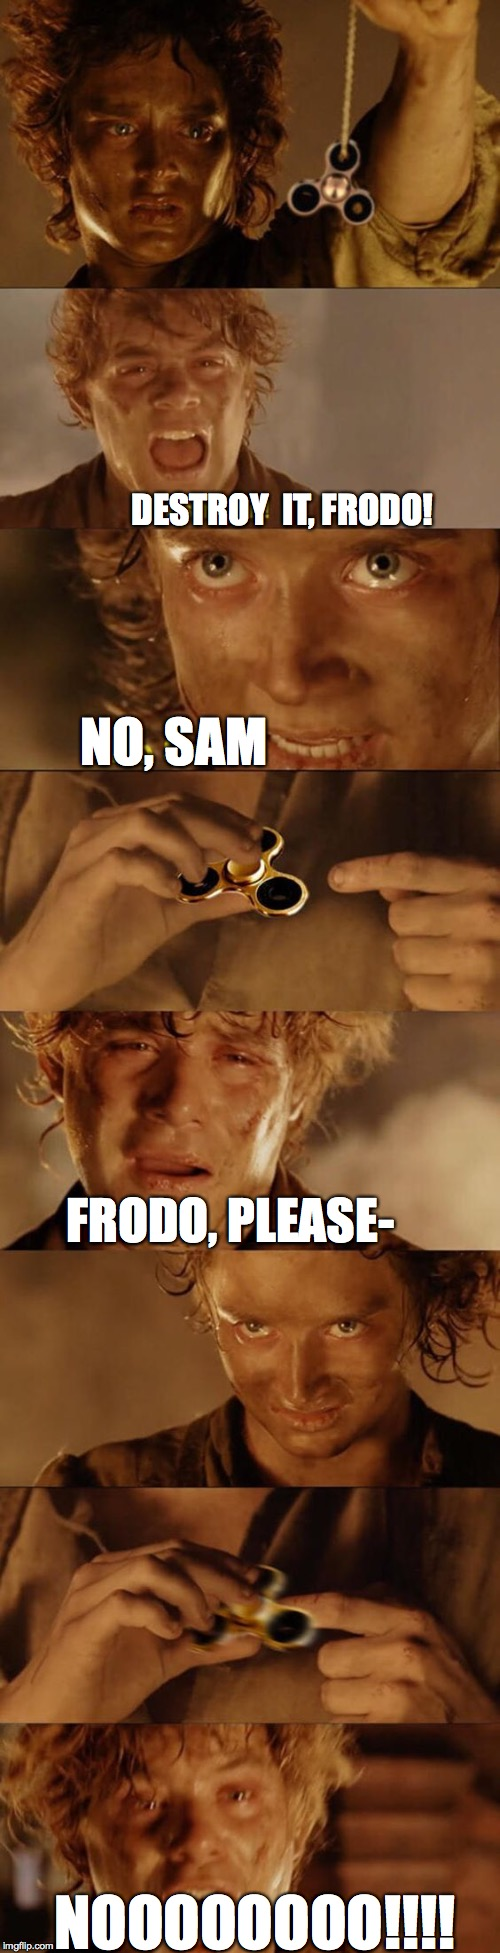 Every day we stray farther from the right thing... | DESTROY  IT, FRODO! NO, SAM NOOOOOOOO!!!! FRODO, PLEASE- | image tagged in frodo,lotr,lord of the rings,fidget spinner,the ring | made w/ Imgflip meme maker